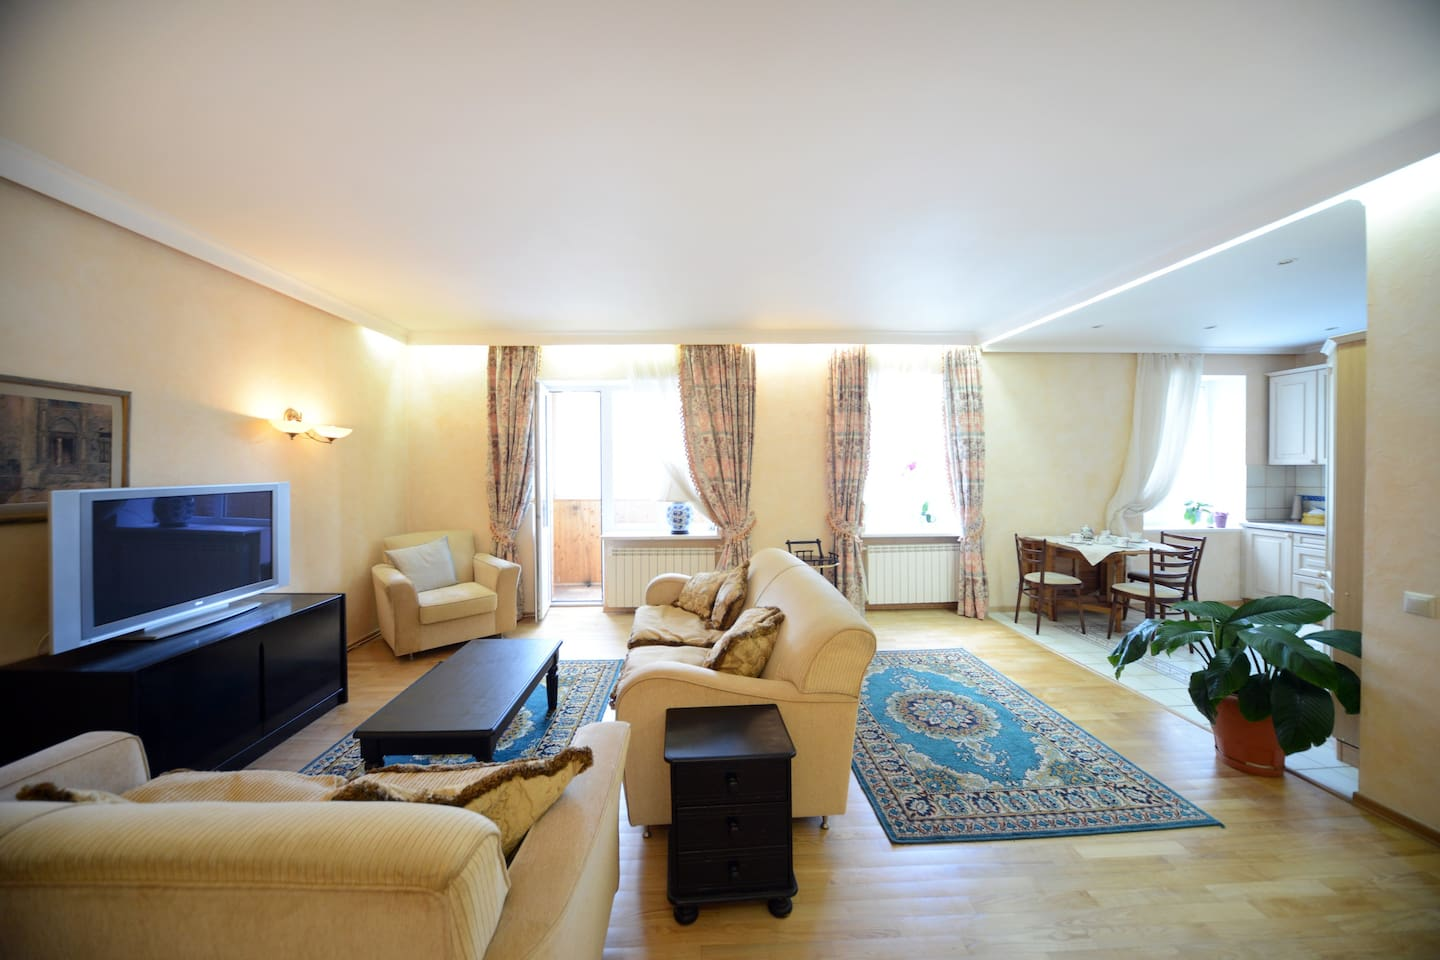 In a large and bright living room - you'll feel right at home